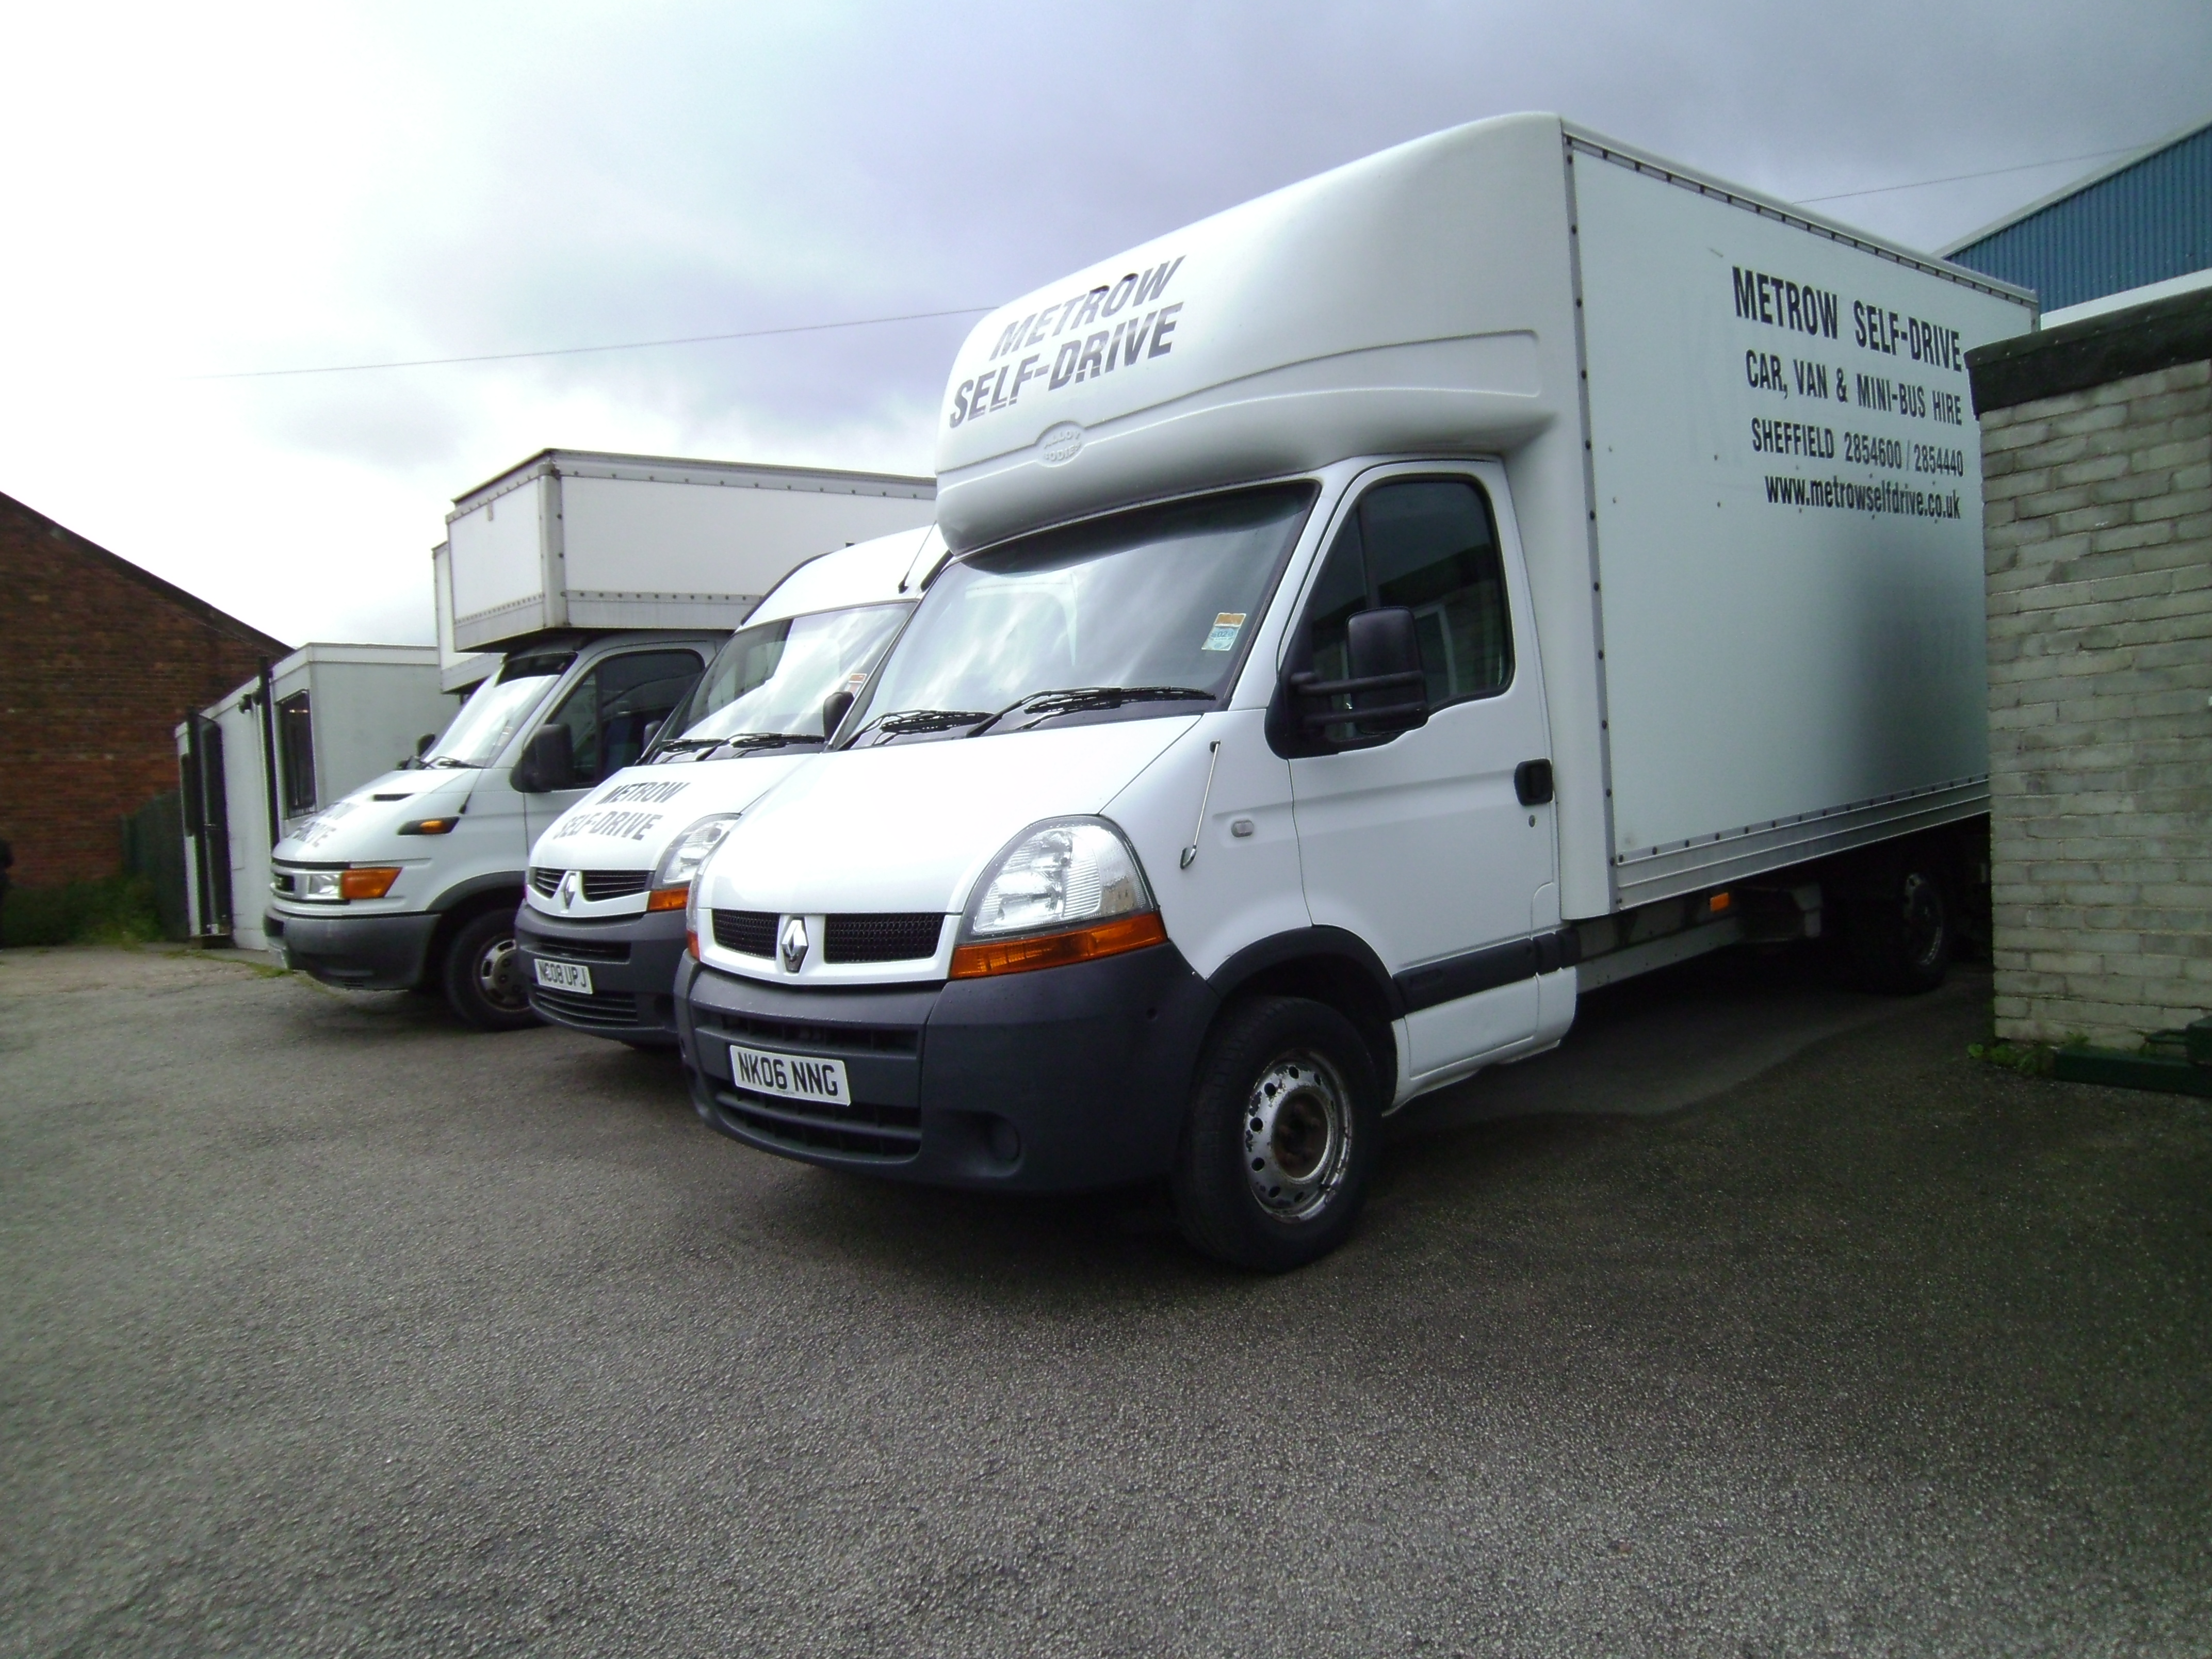 Some of our vans